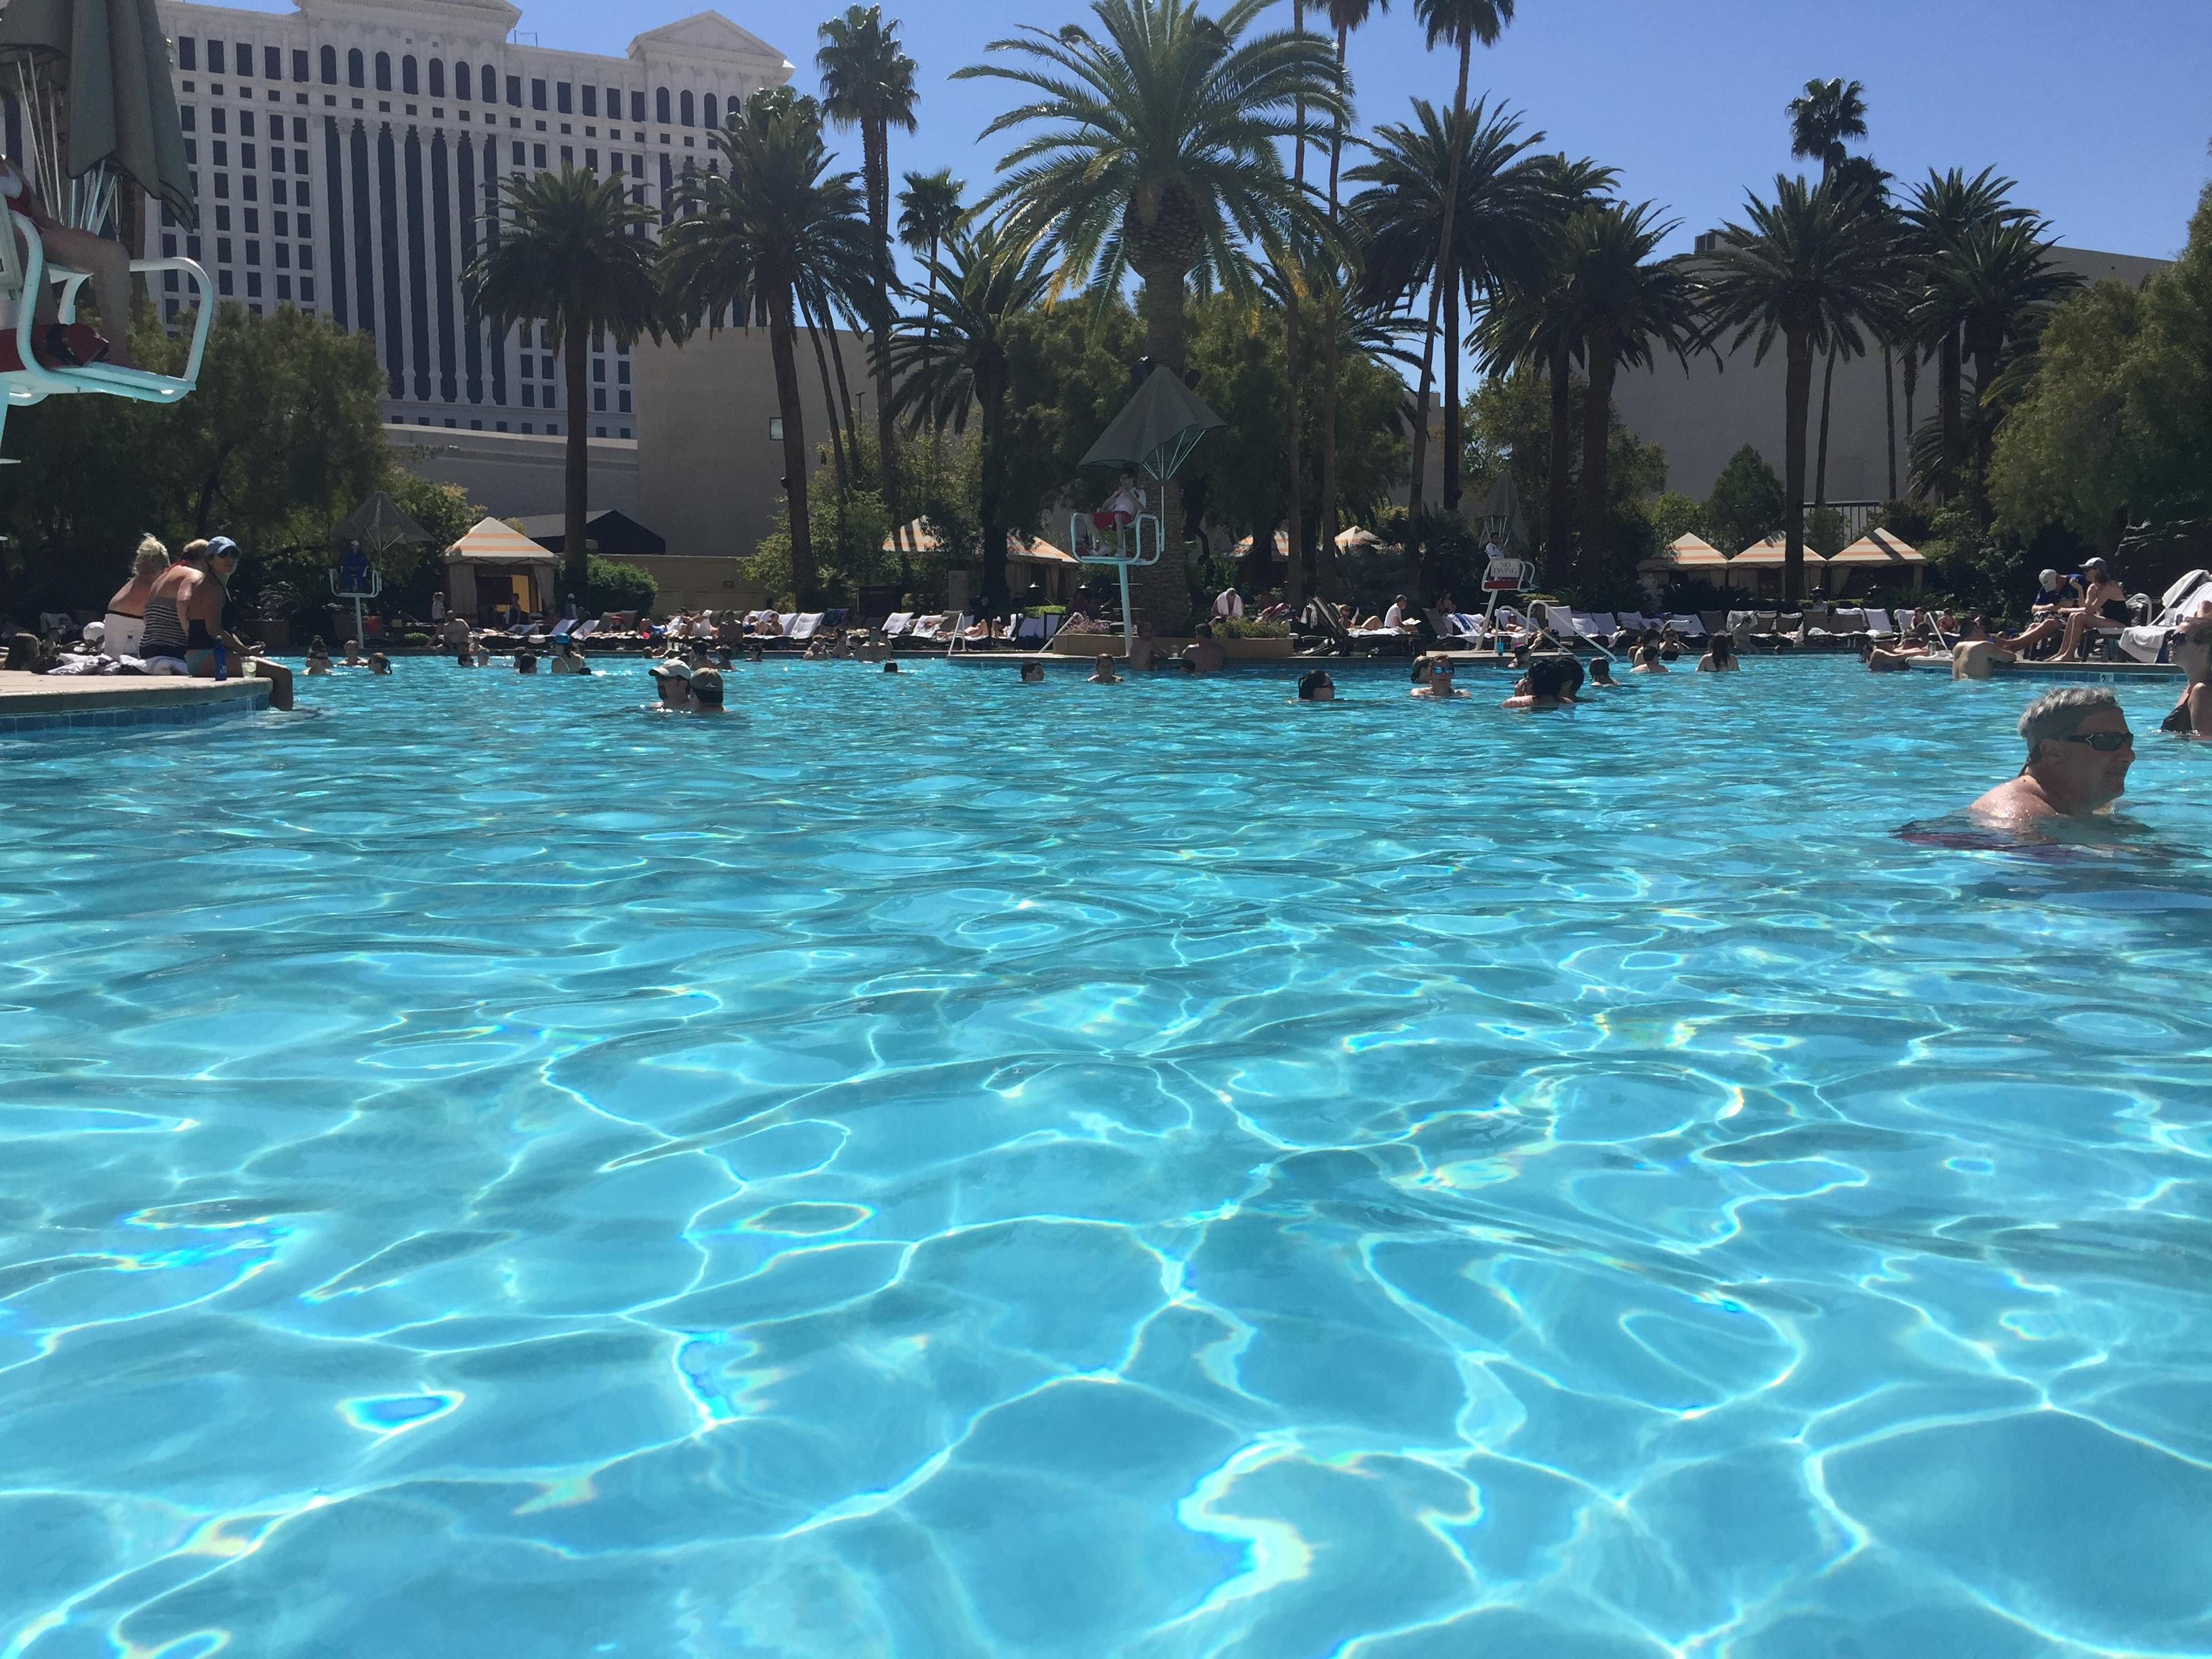 It was nice and sunny at the Mirage